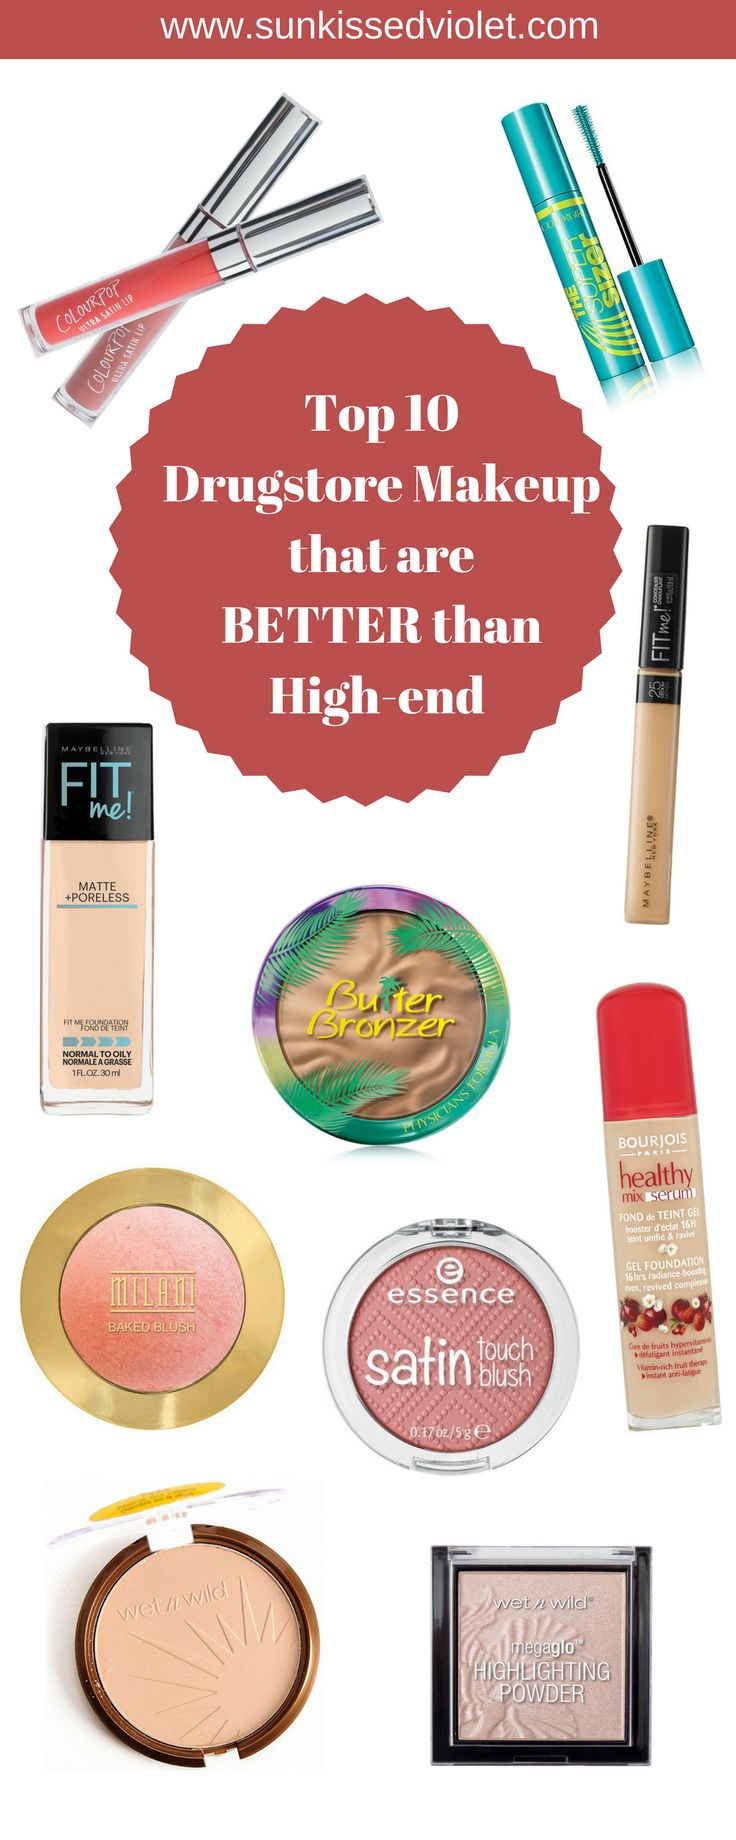 Top 10 Drugstore Makeup that are Better than High-end #cosmetics #drugstoremakeup #makeup #wetnwild #maybelline #colourpop #covergirl #essencecosmetics Maybelline Fit Me Wet n Wild Reserve your canaba Covergirl supersizer mascara Wet n Wild megaglow highlighter Physicians formula butter bronzer essence satin touch blush Milani Baked Blush Luminoso Colourpop Ultra Satin Lip bourjois healthy mix serum foundation